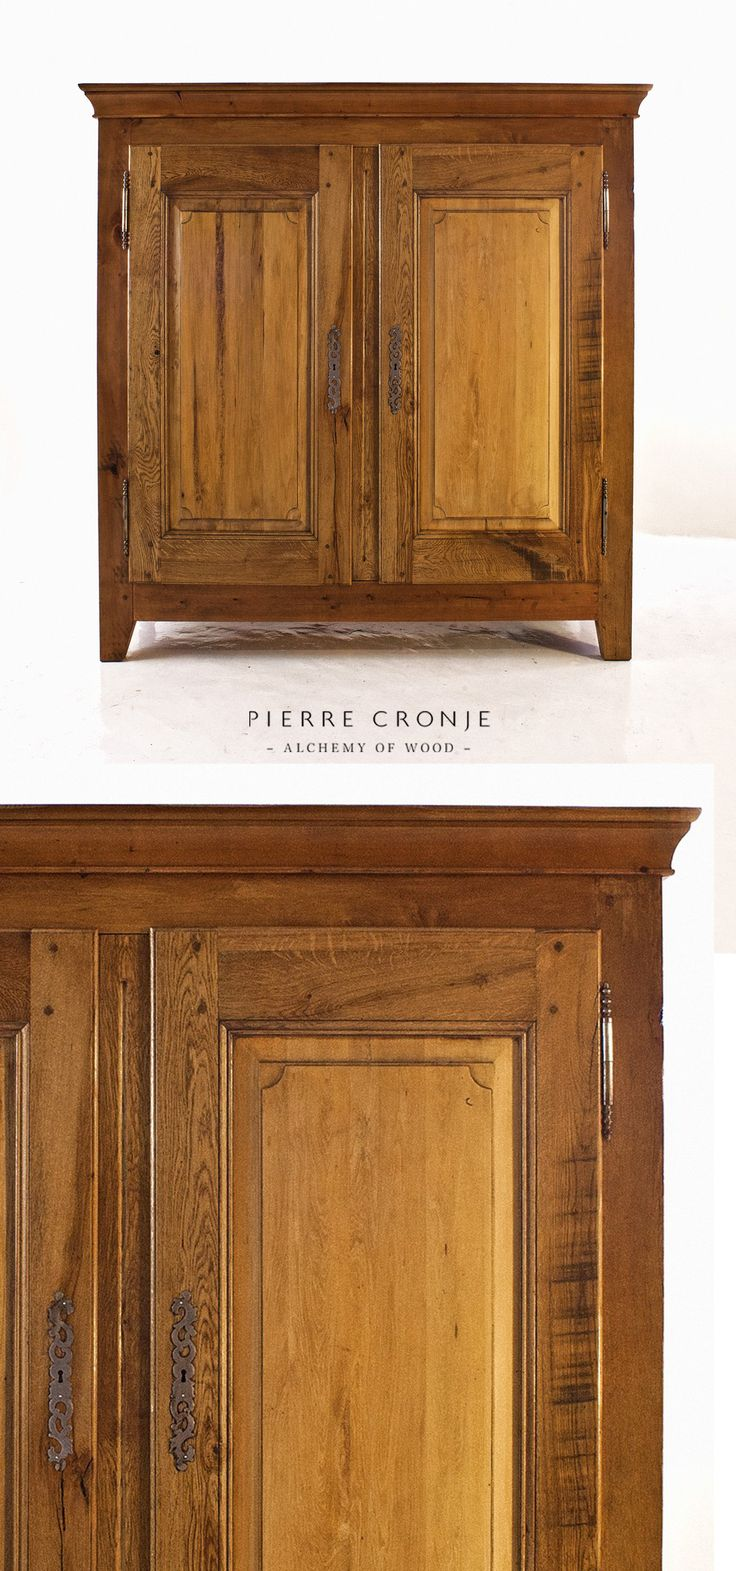 A Pierre Cronje Karoo Cape Cupboard in Witels and French Oak with French hinges and escutcheons - 1800x600x1800mm (LxWxH). Th